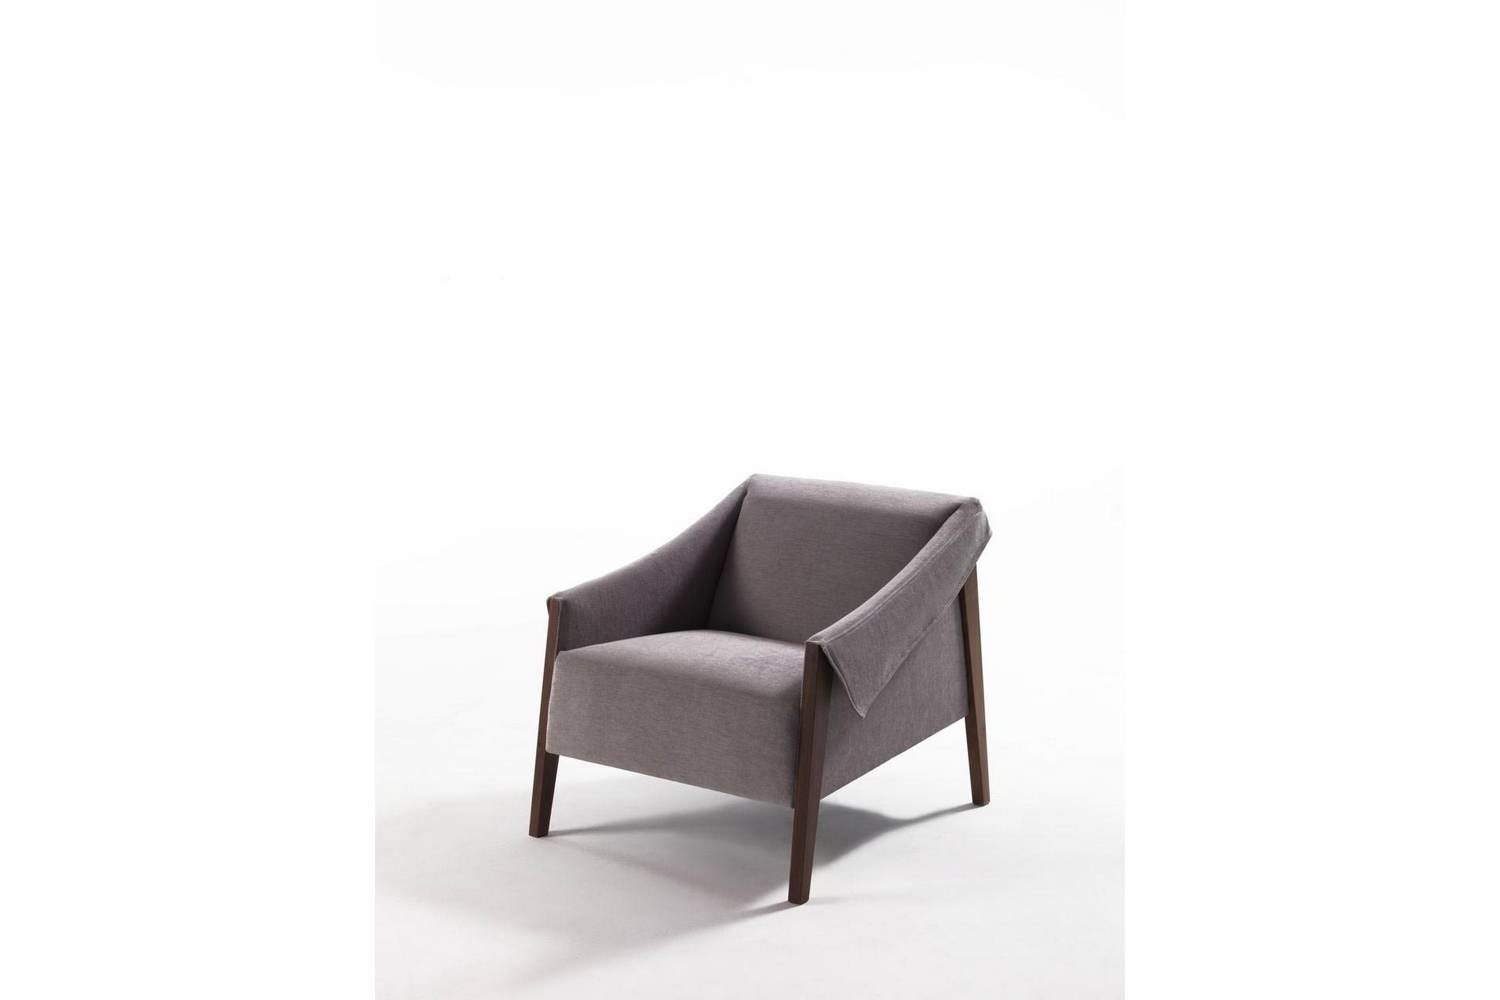 Ara Armchair by G. Vigano for Porada